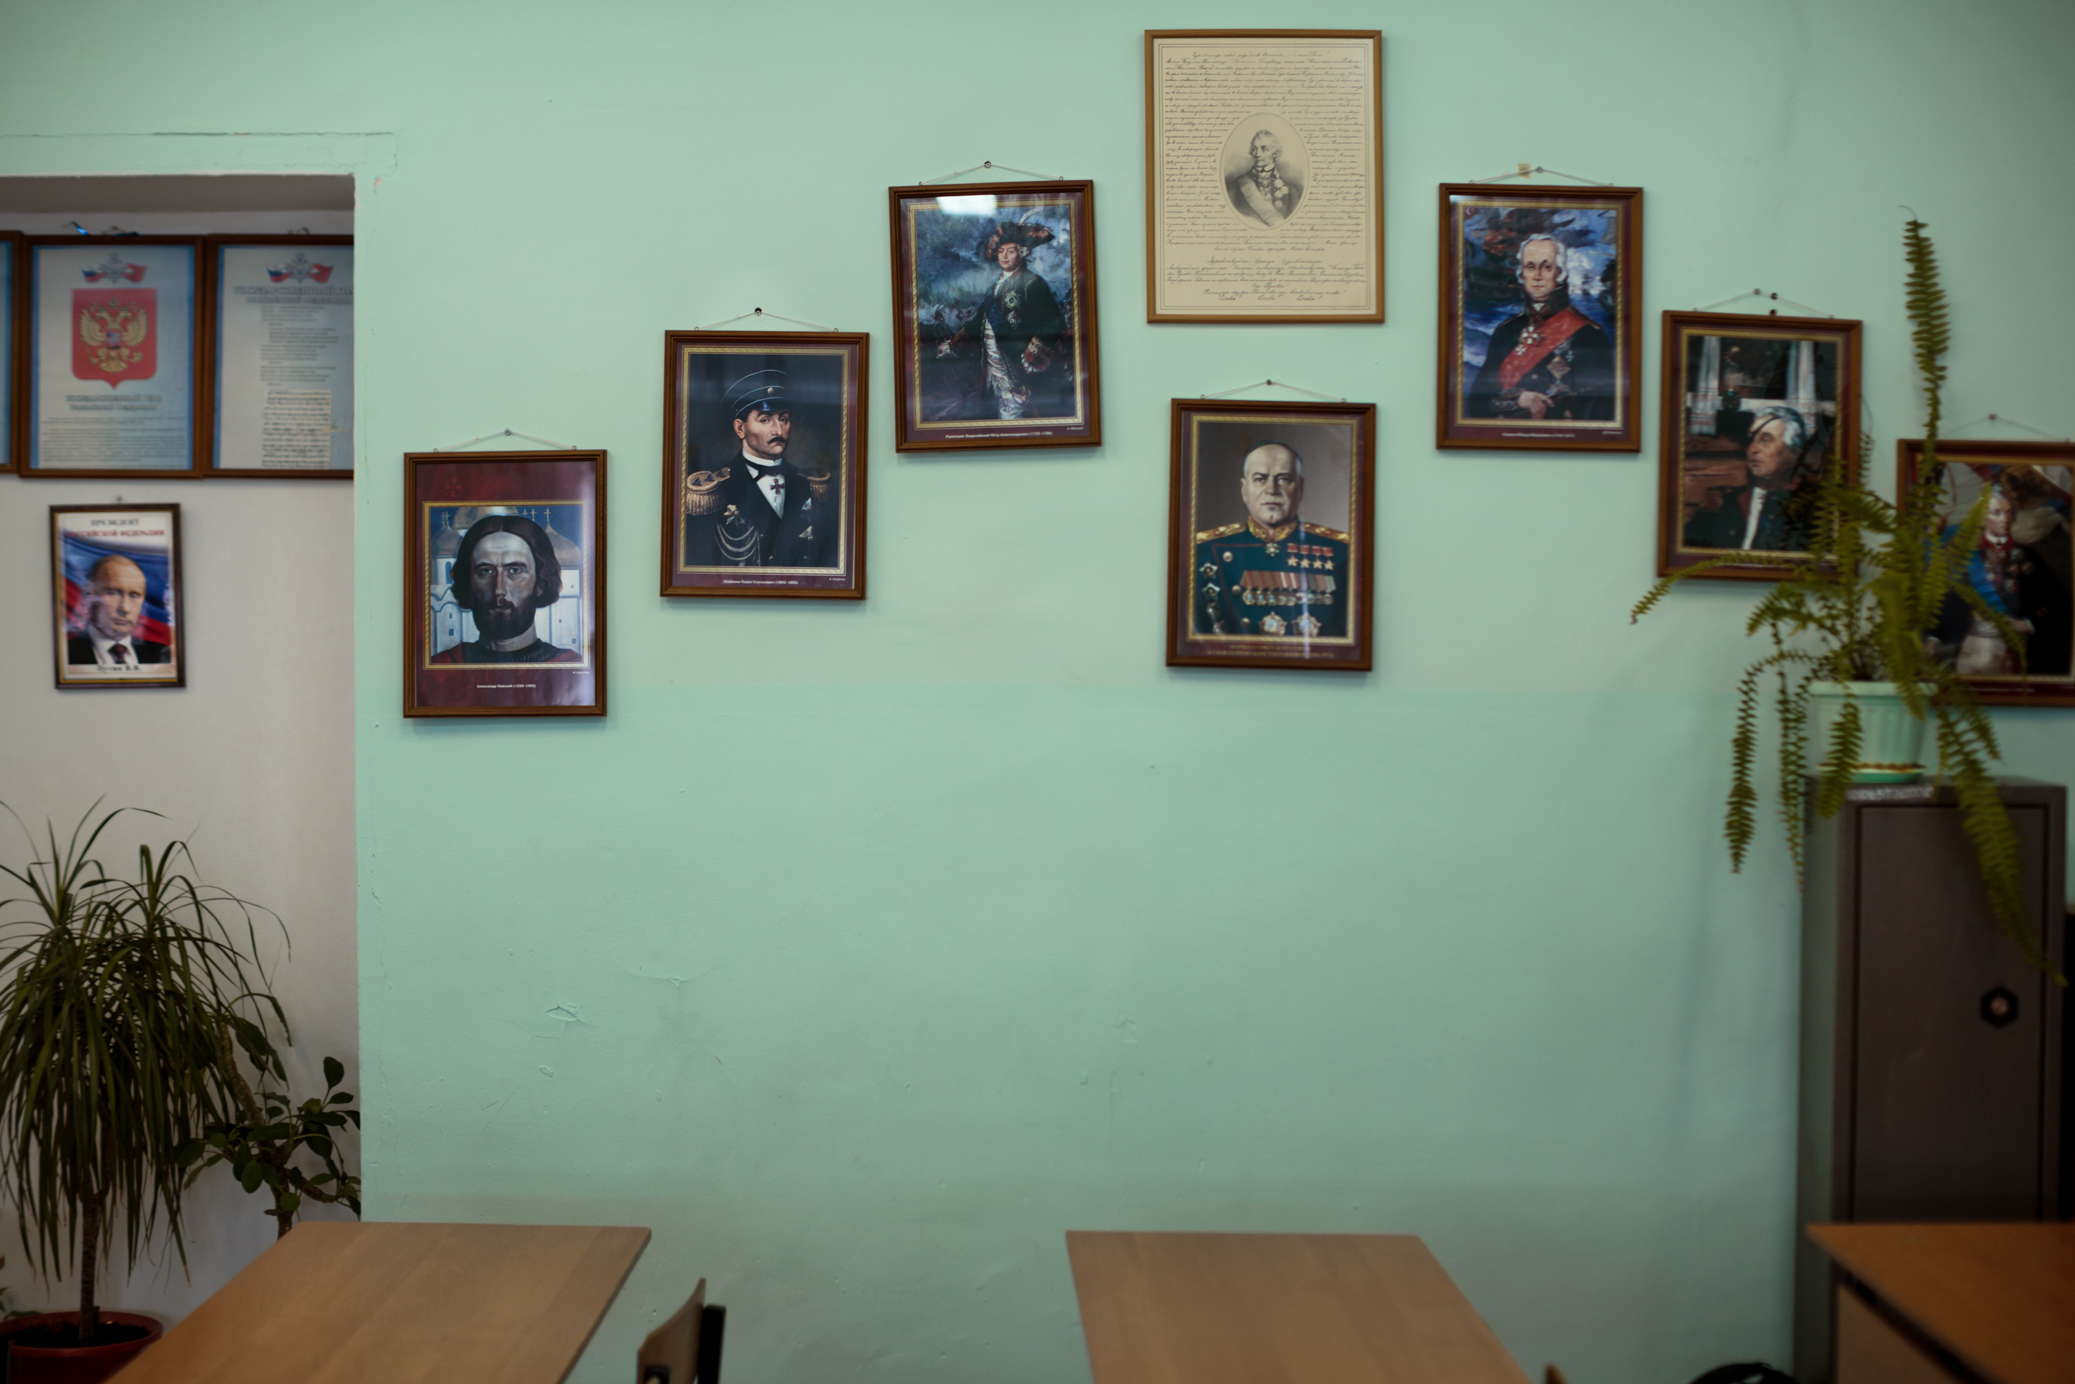 A classroom wall decorated with legacies from Russian history, starting with Vladimir Putin on the far left.